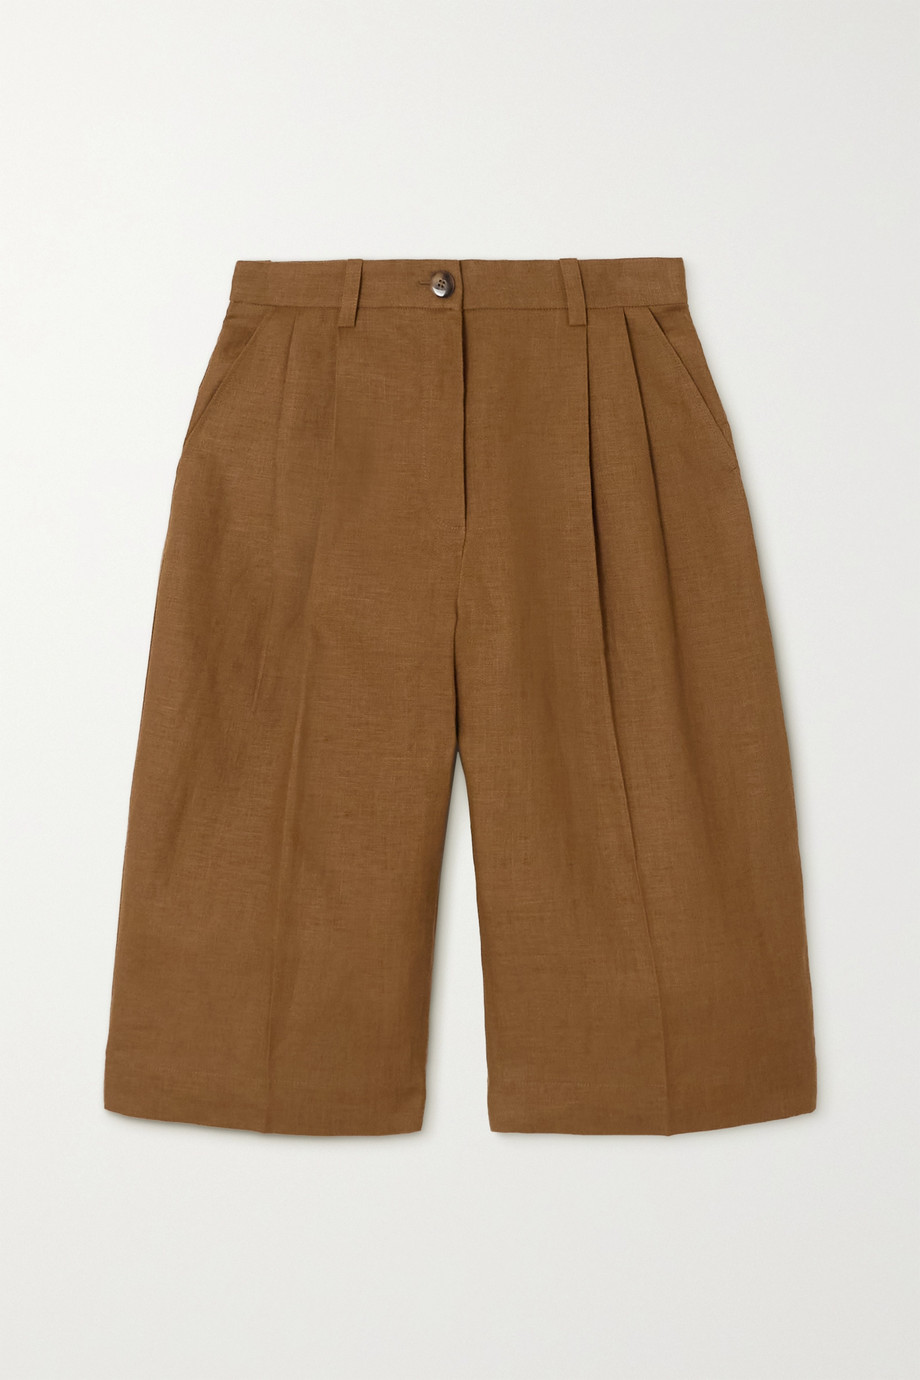 Bouguessa Meera pleated linen shorts